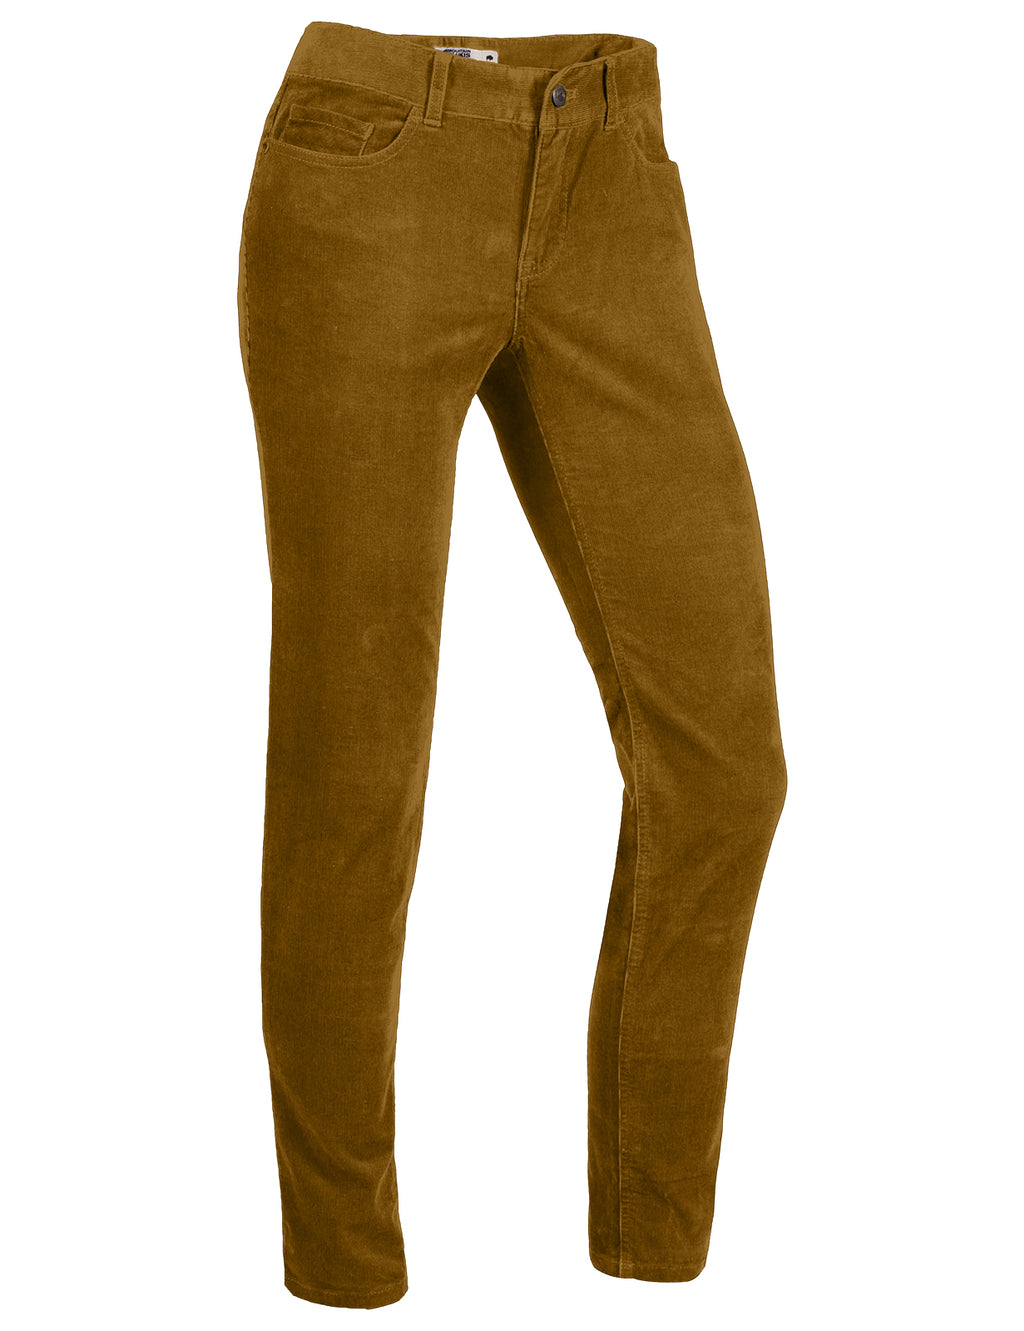 Women's Crest Cord Pant | Slim Fit / Blithe Bamboo